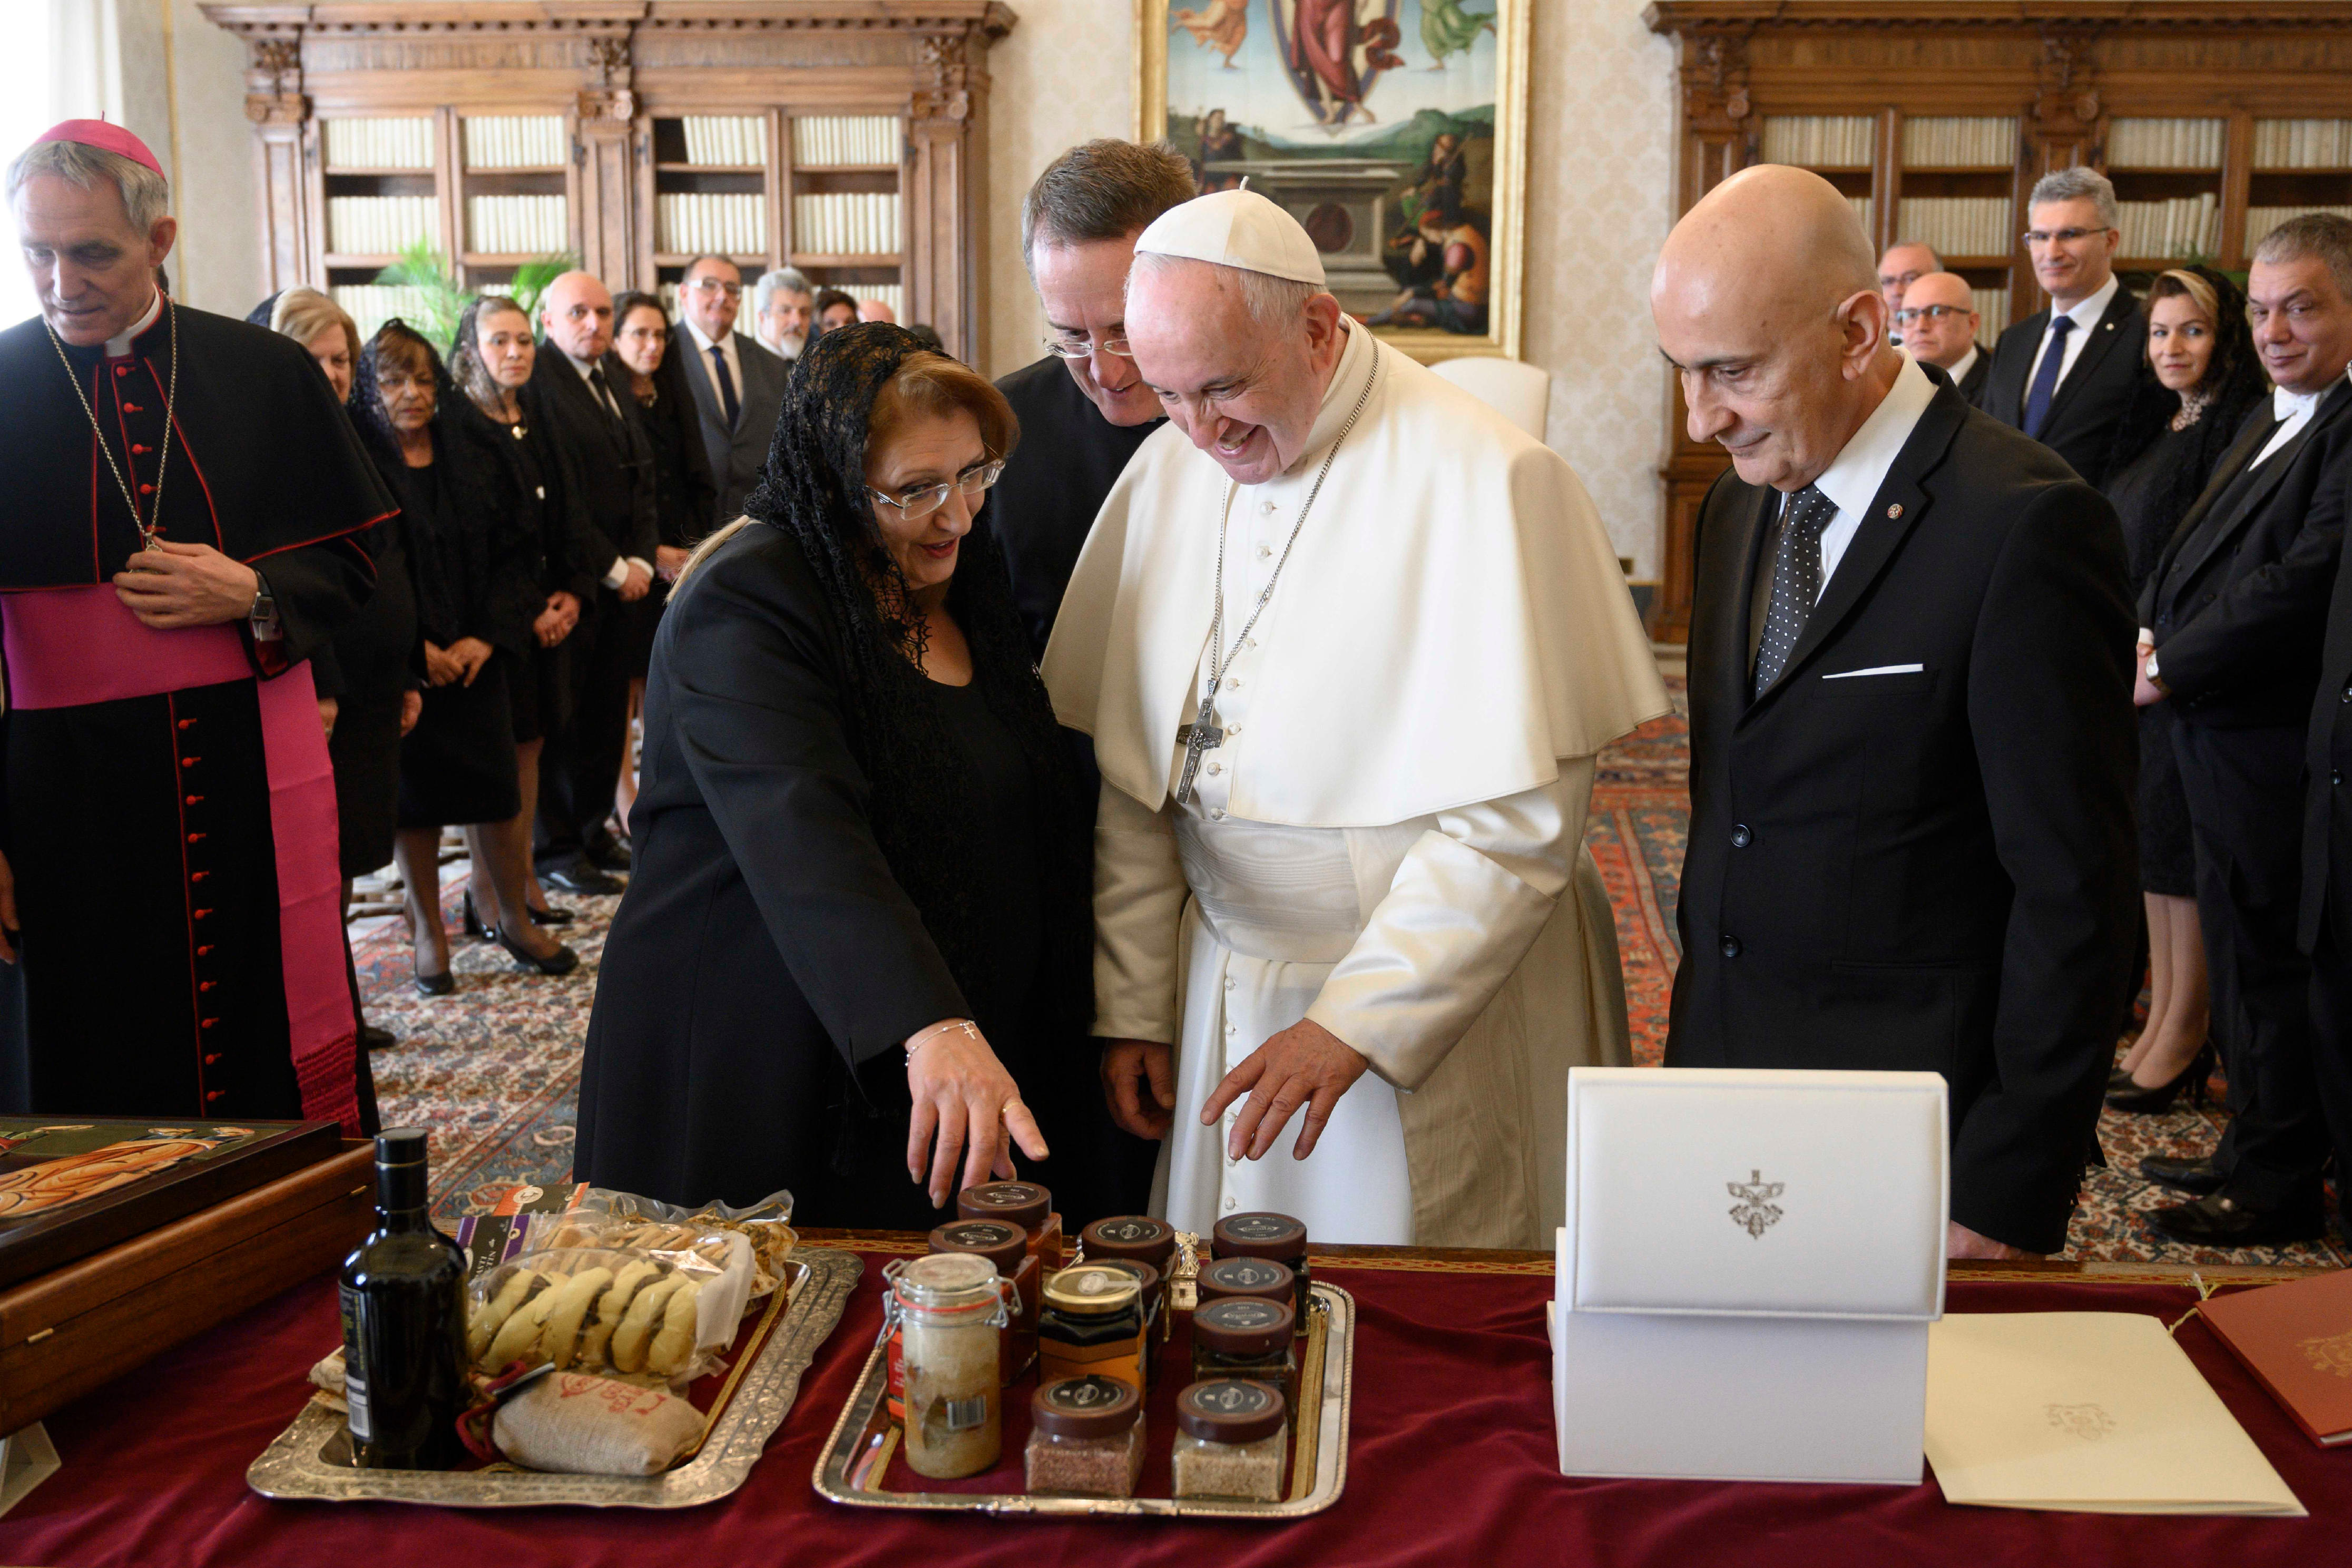 Catholicism's Centuries-long Contribution to Country of Malta, at Forefront of Pope's Meeting With President - ZENIT - English